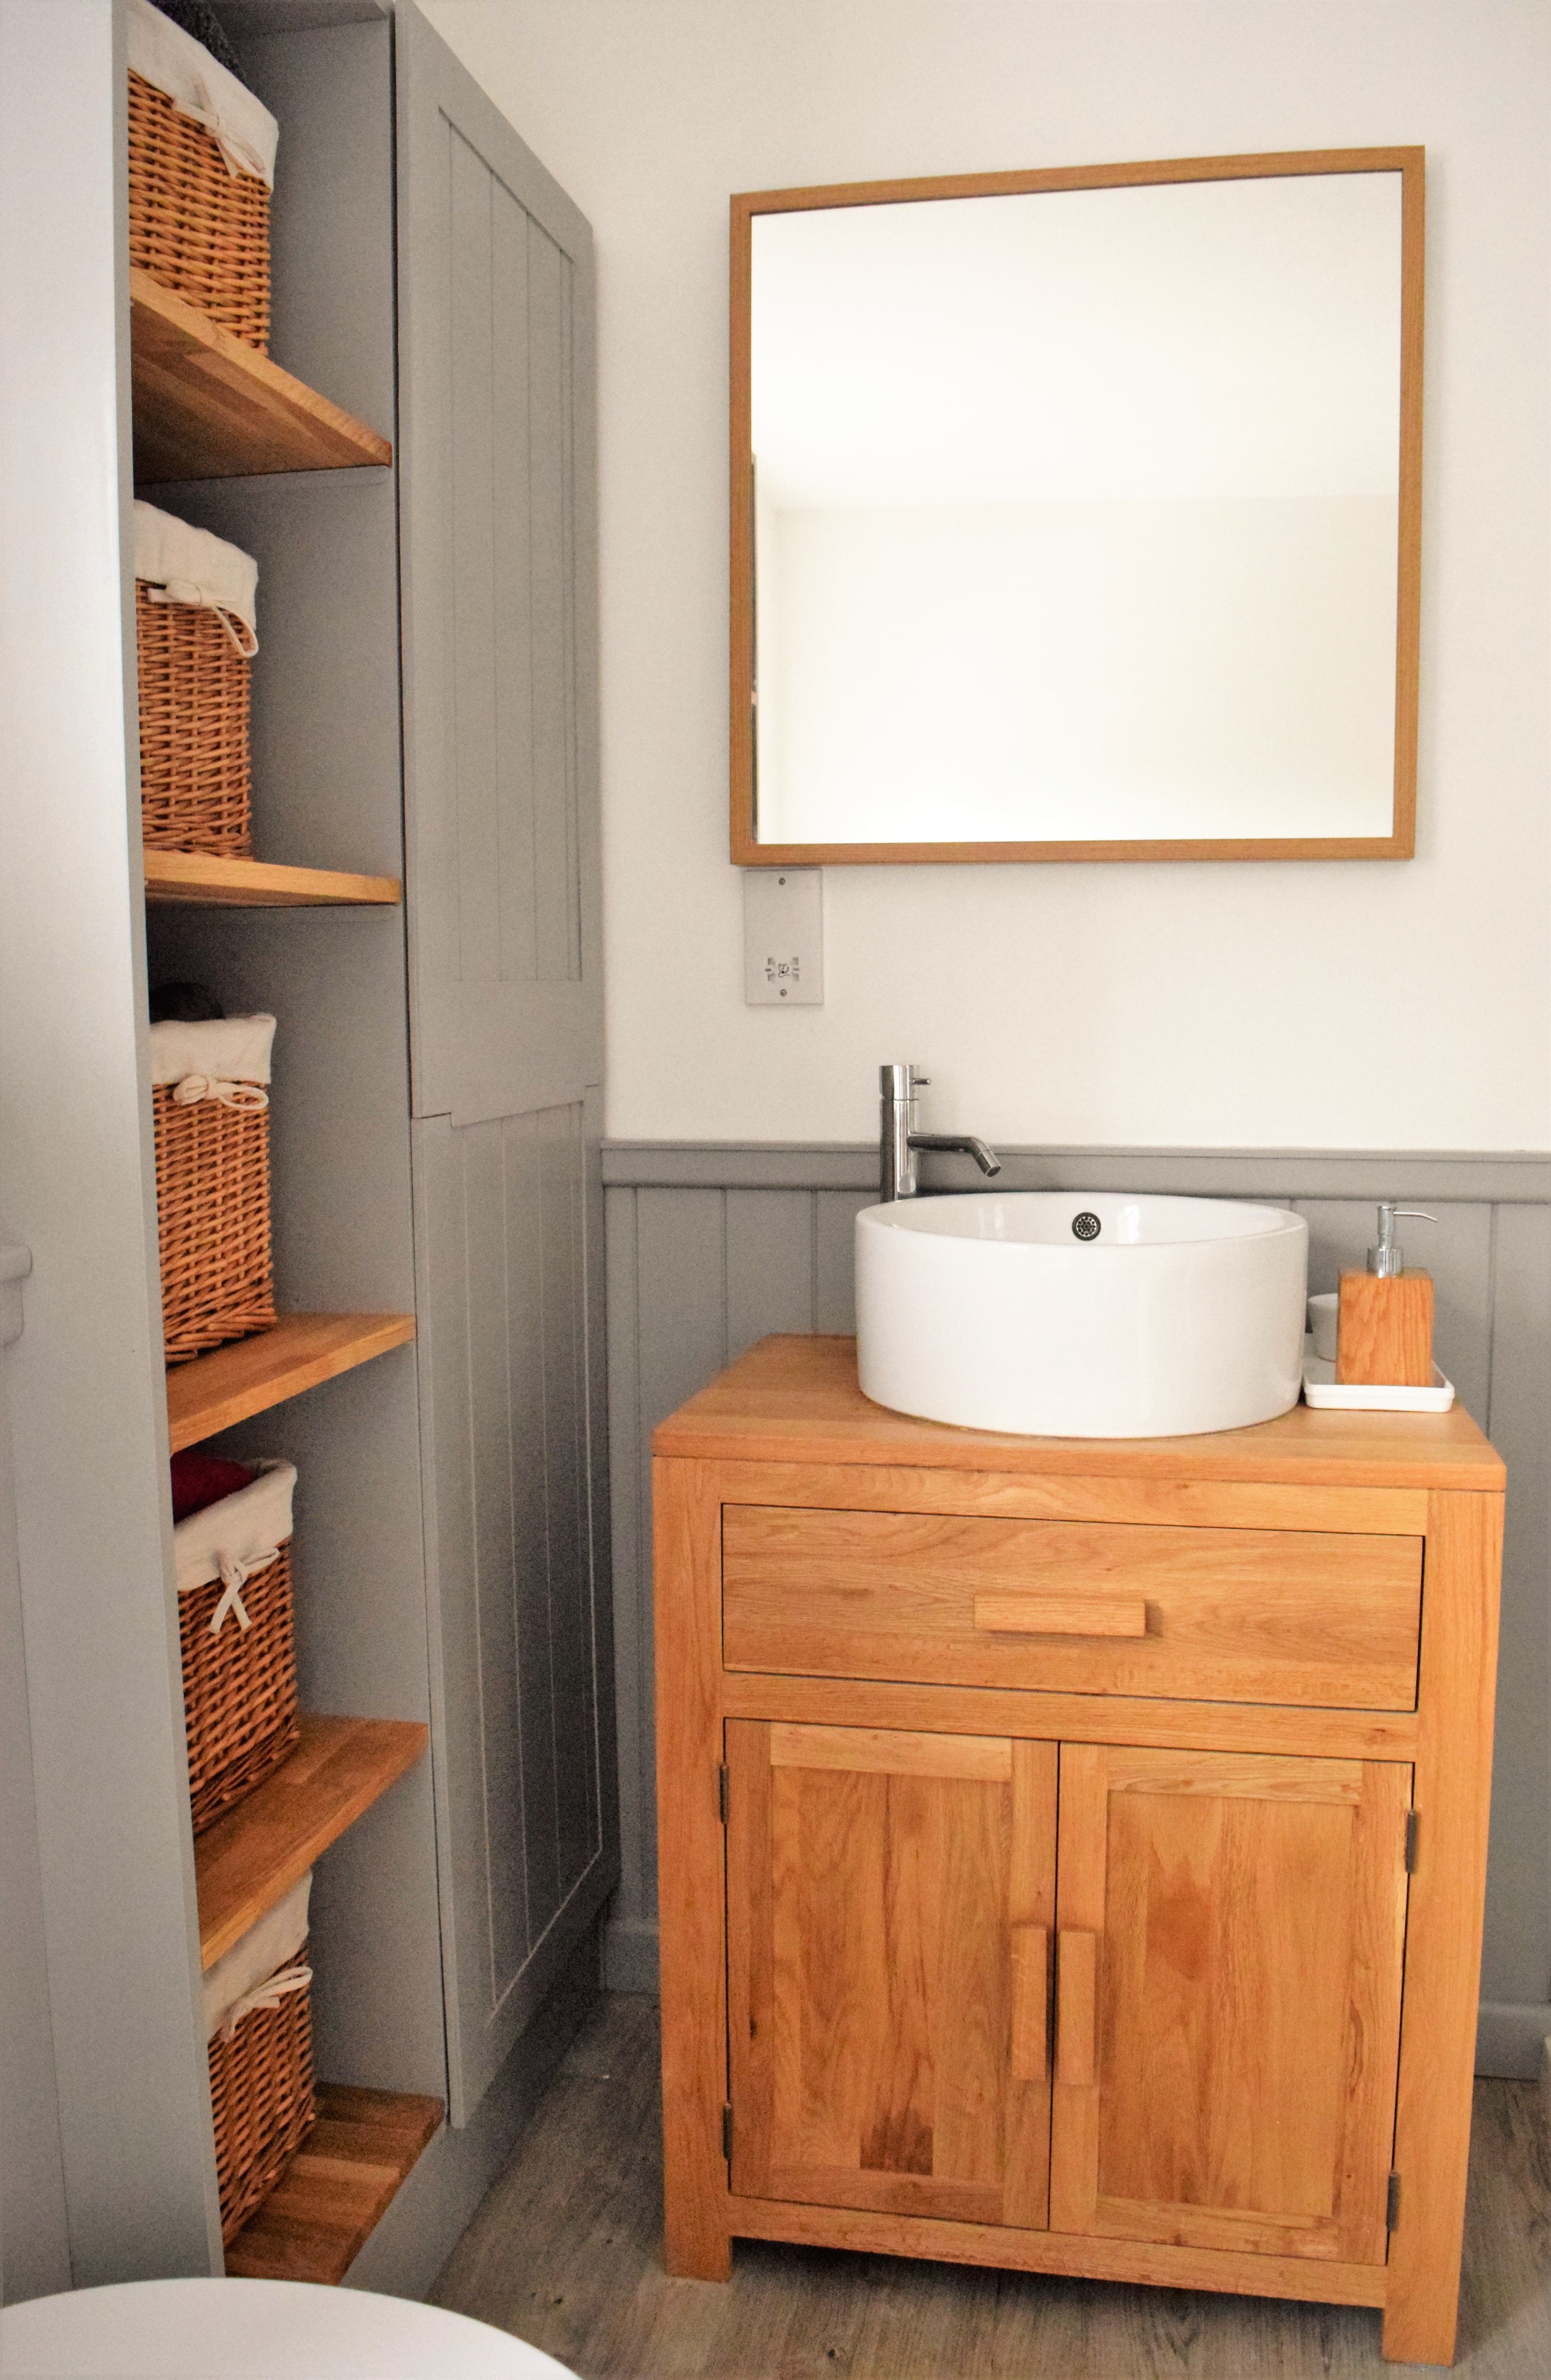 Oak Cabinet With Ceramic Basin And Homemade Bathroom Shelves Cupboard To Hide The Boiler